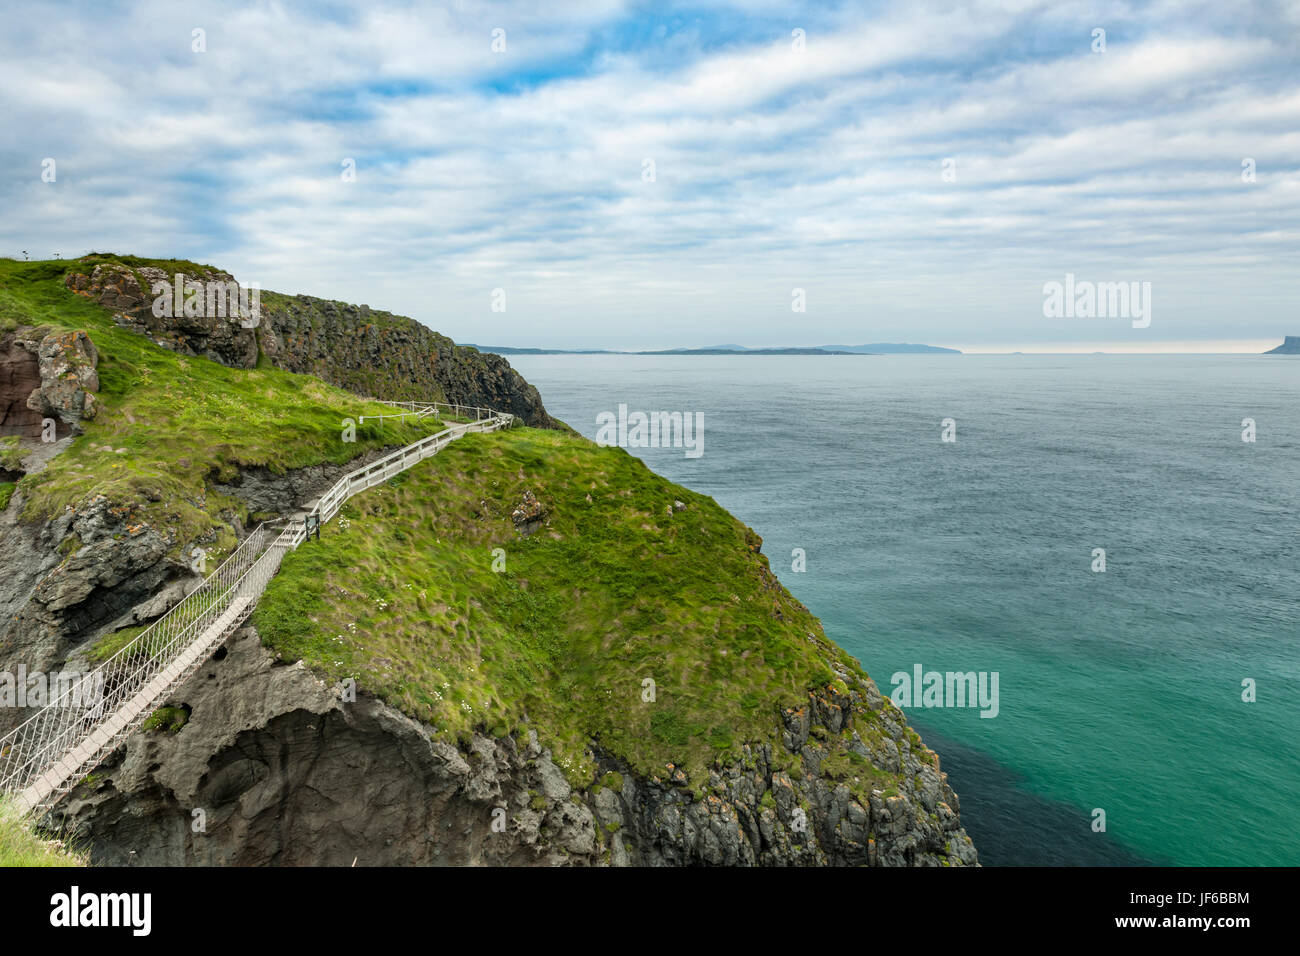 Scenic coastal view along pathway out to Carrick-a-rede rope bridge, Northern Ireland - Stock Image